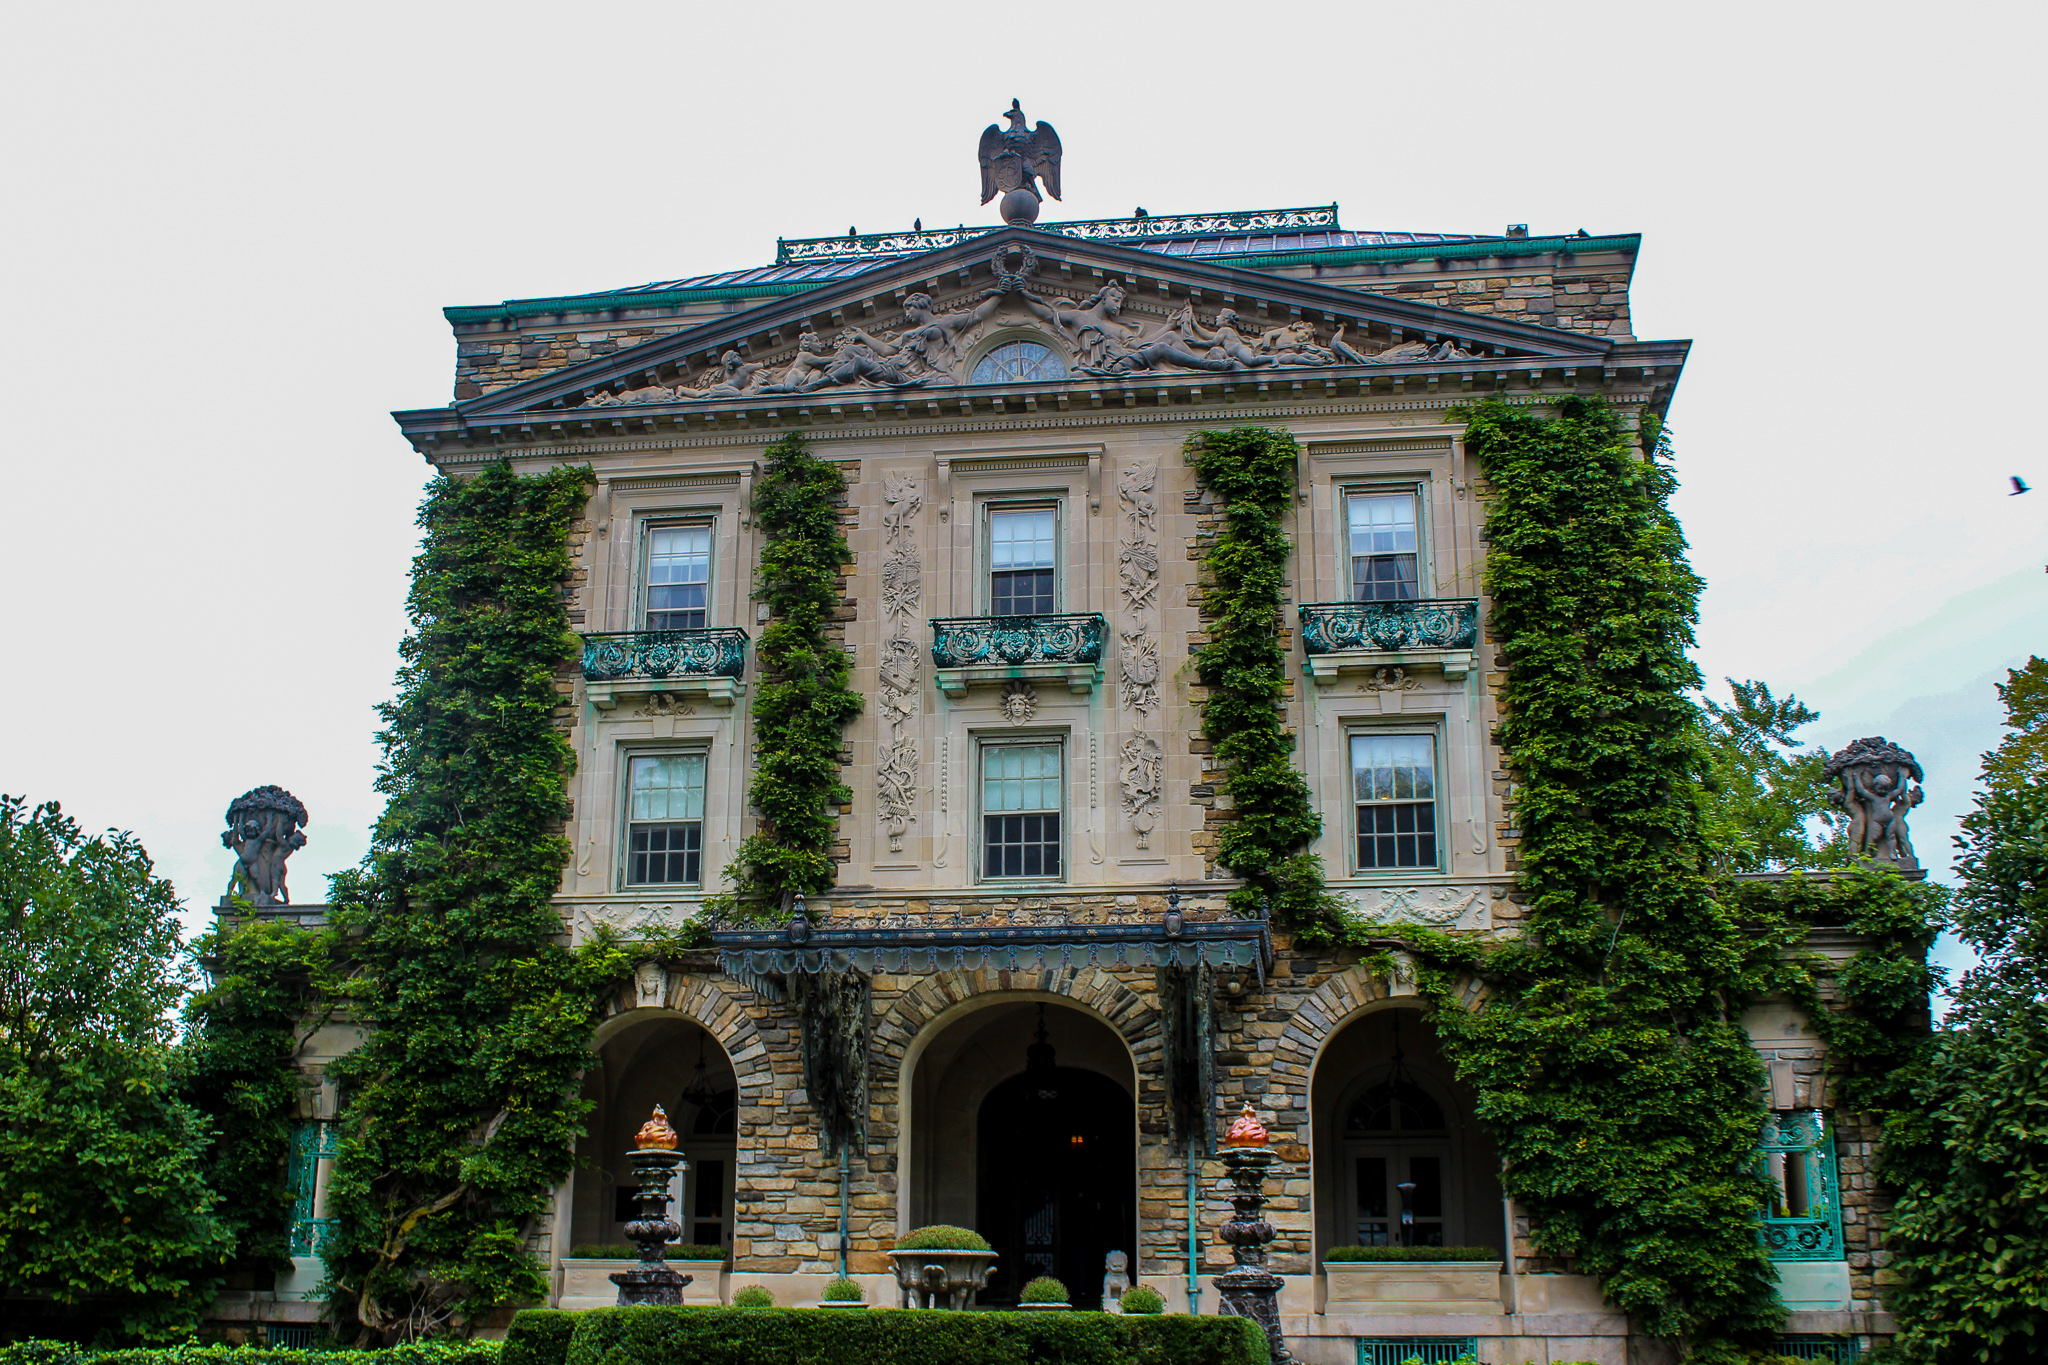 things to do in sleepy hollow new york include seeing a Rockefeller estate